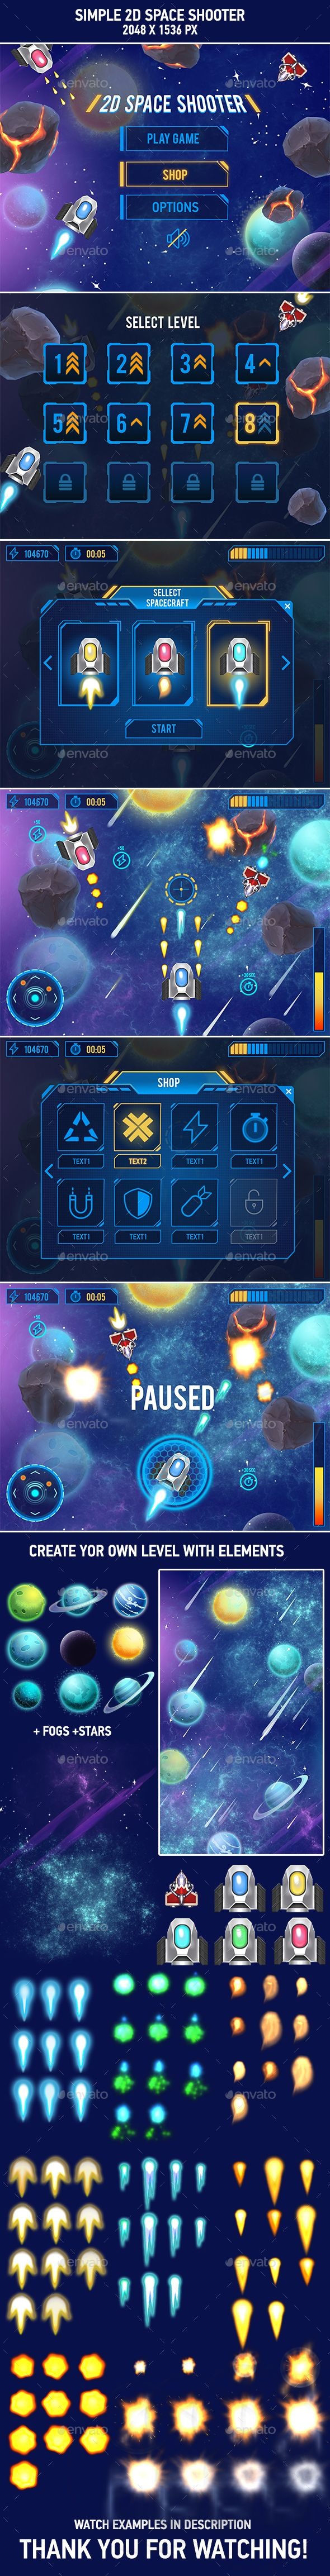 2D space shooter game assets